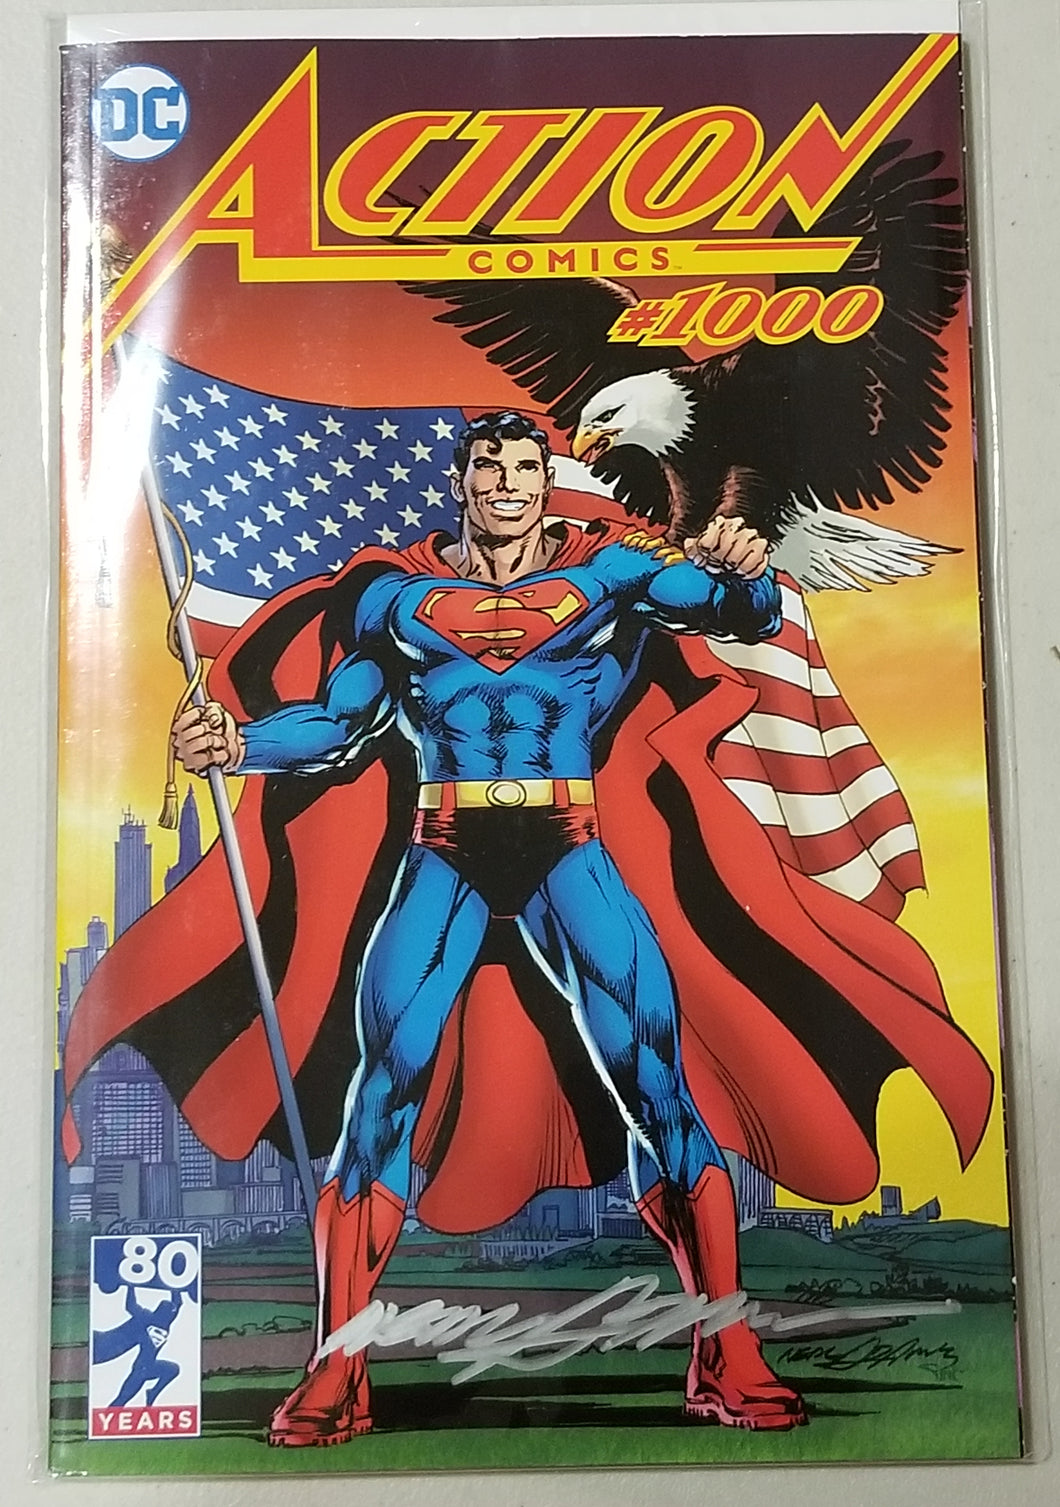 Signed DC Action Comics #1000 Neal Adams/Legends Comics and Games Variant